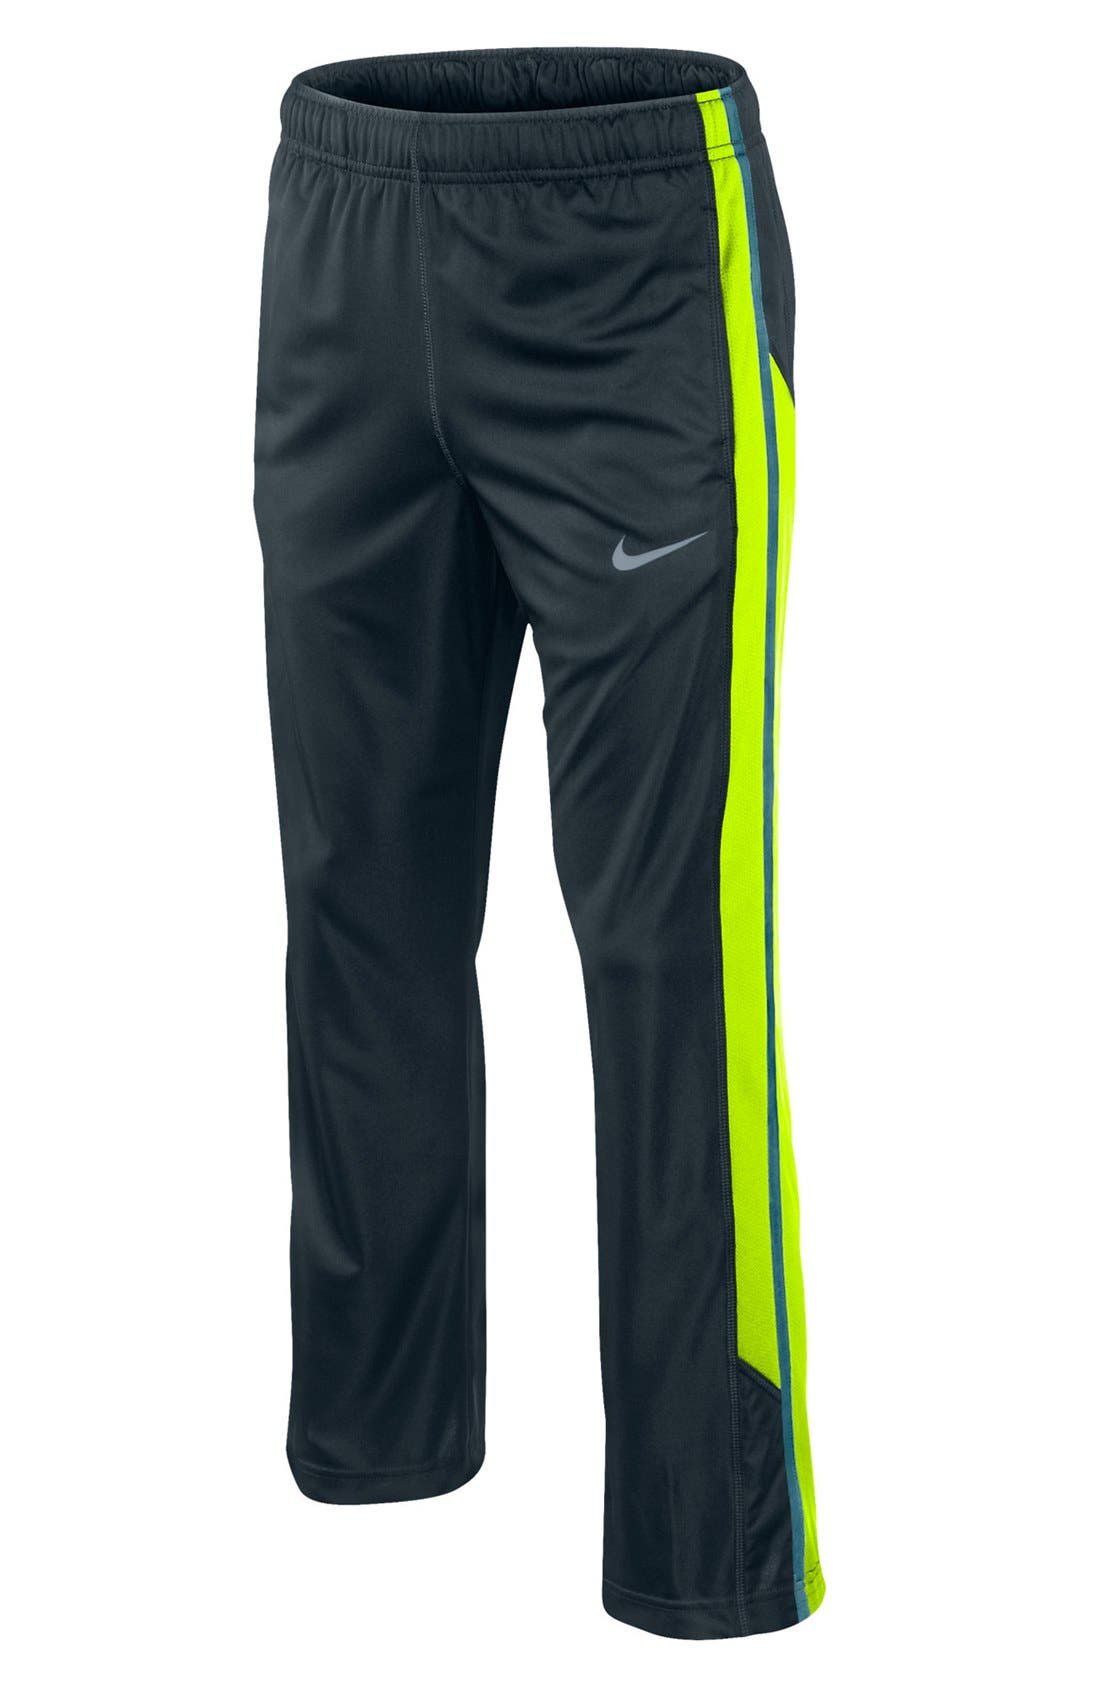 Alternate Image 1 Selected - Nike 'Lights Out' Pants (Big Boys)